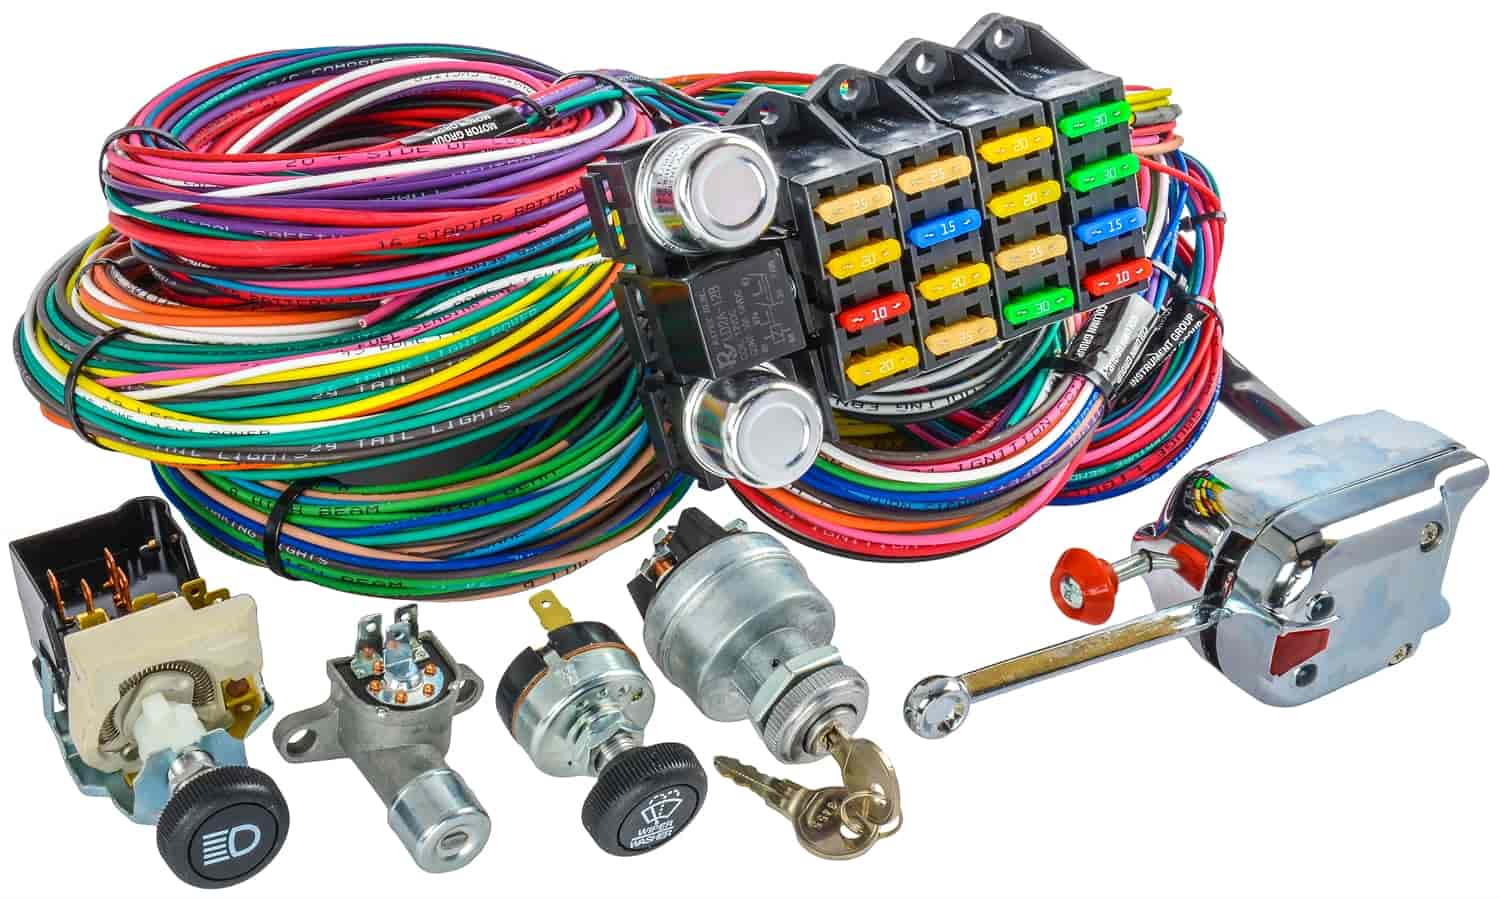 555 10405k jegs performance products 10405k universal wiring harness jegs universal wiring harness at alyssarenee.co